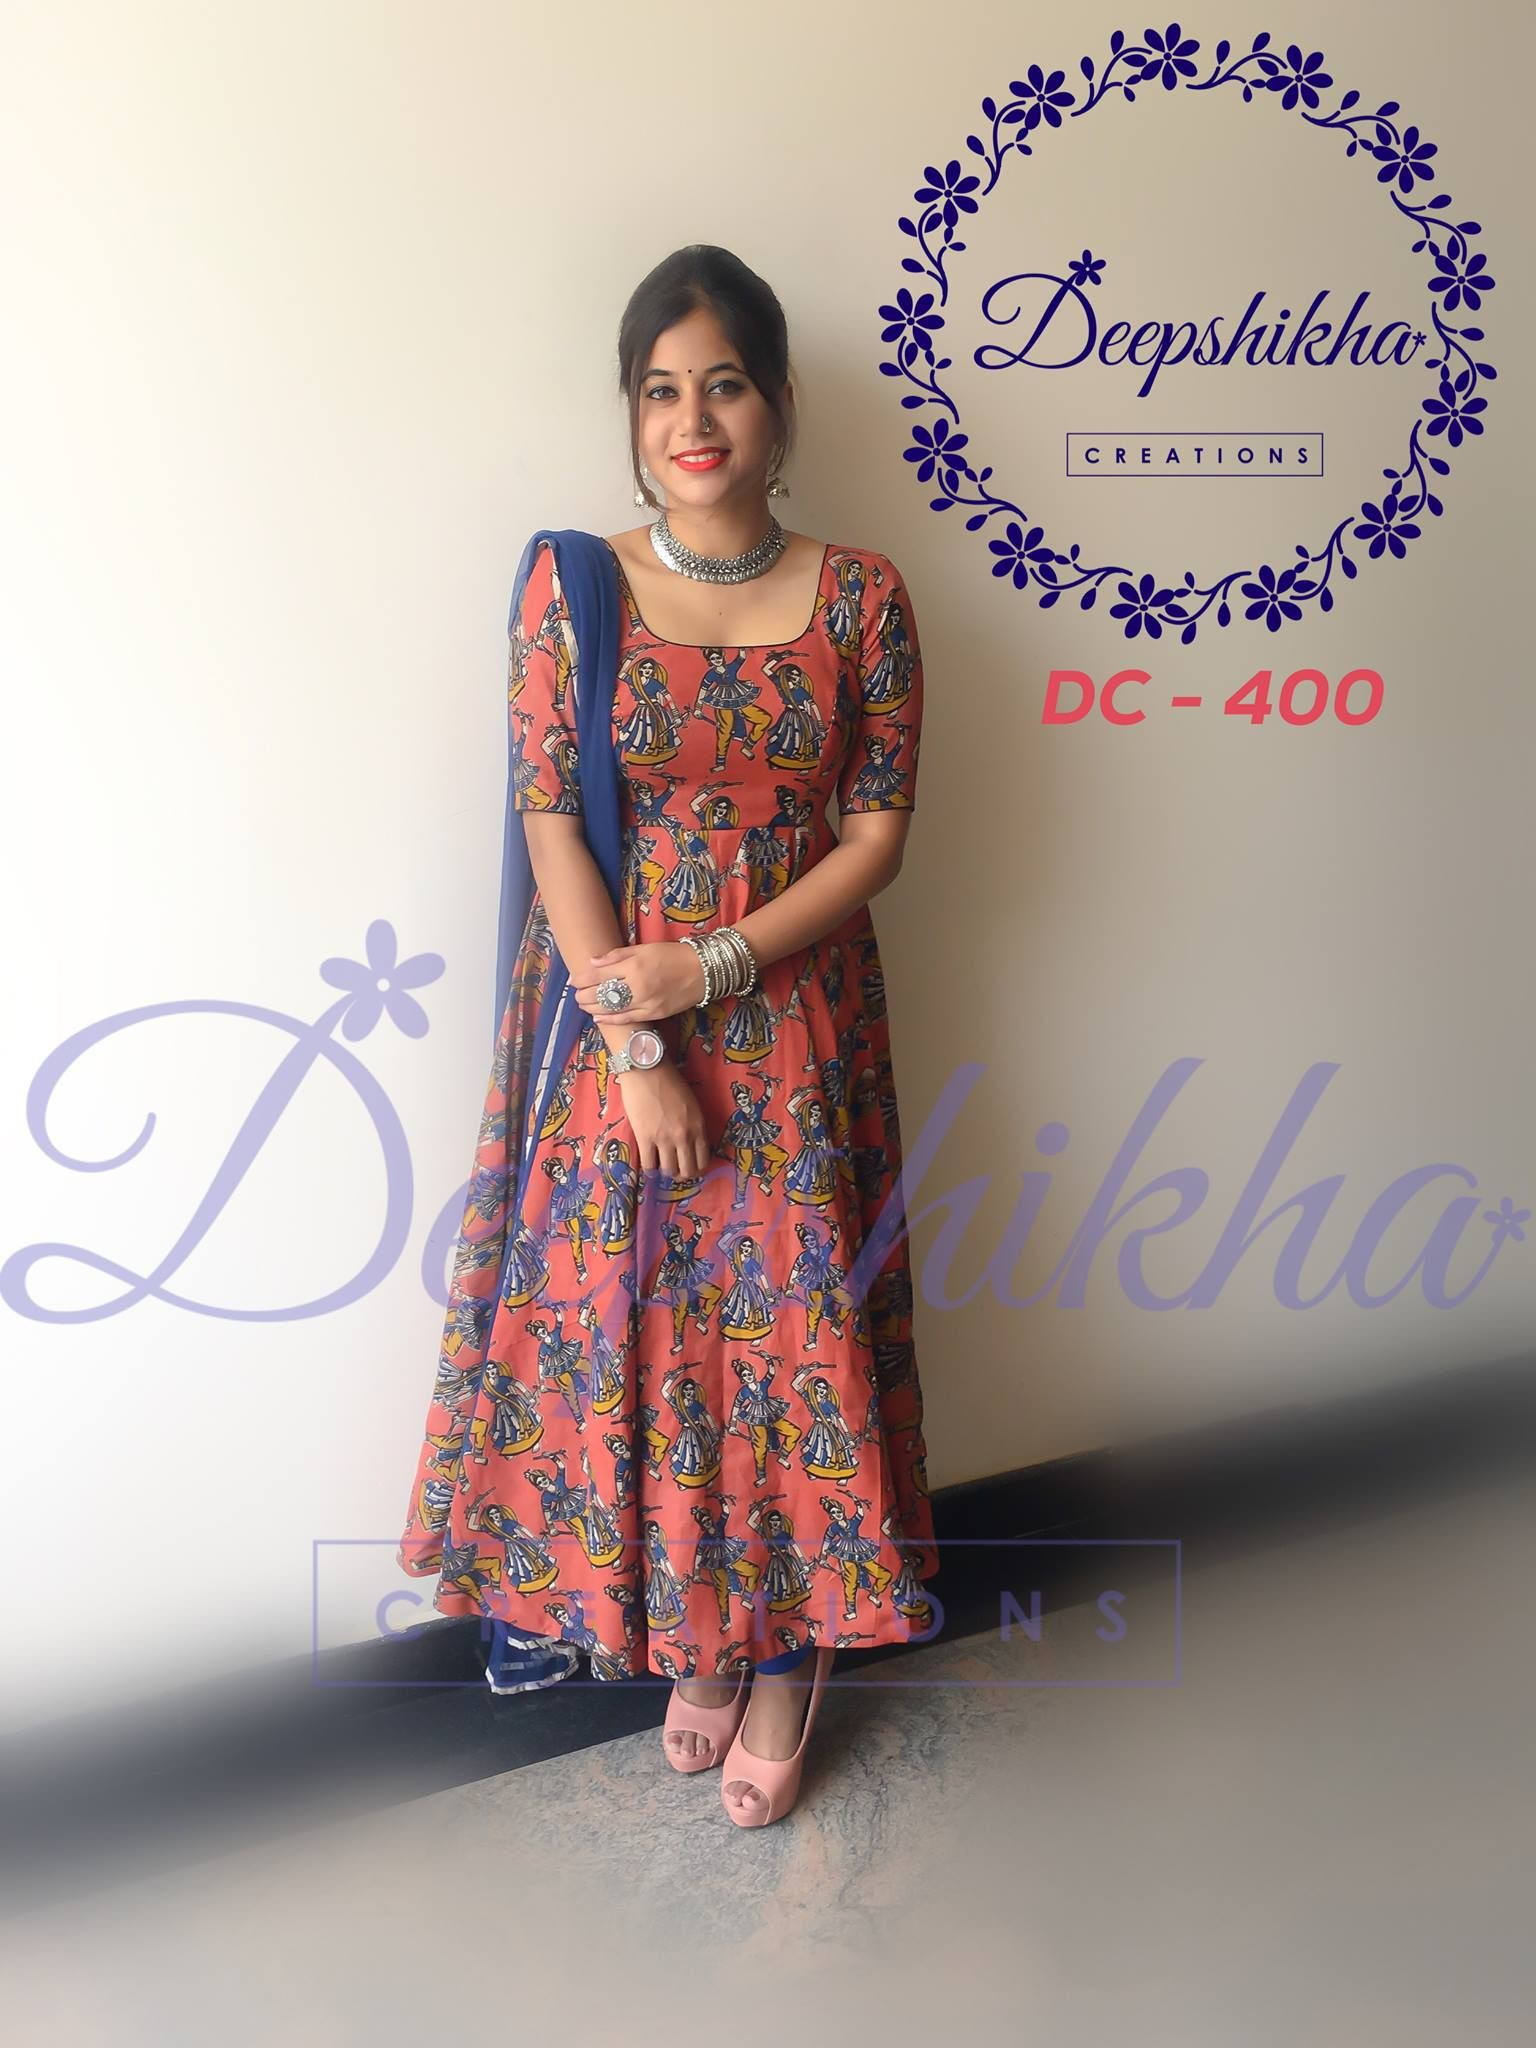 a3d4ad660c Beautiful kalamkari print floor length dress from Deepshikha.For queries  kindly whatsapp : +91 9059683293 31 July 2017